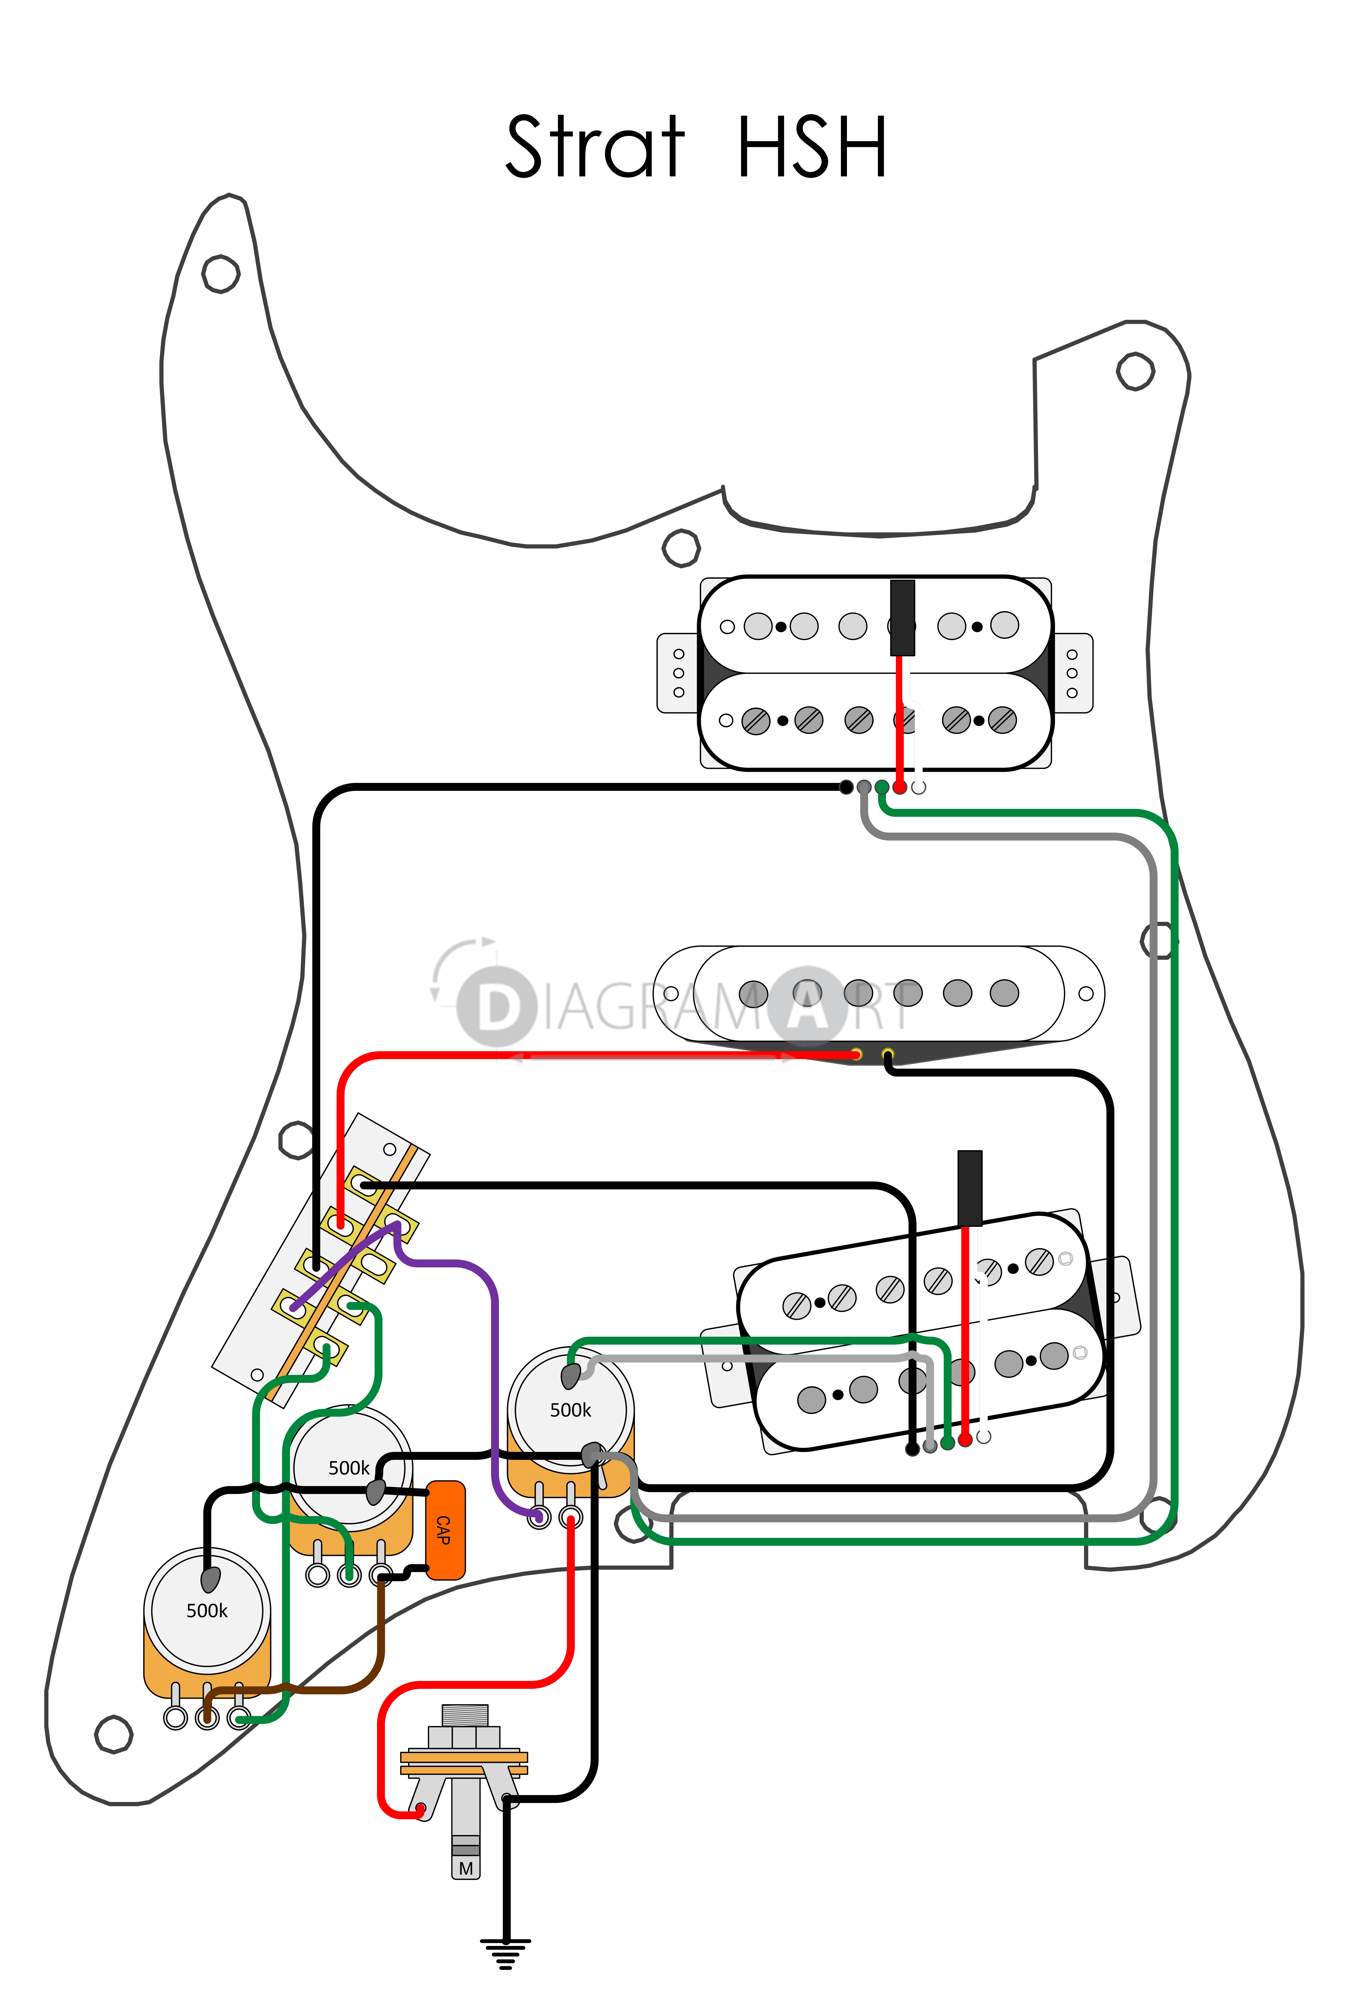 Hsh Wiring Diagram Great Design Of 2 Volume 1 Tone Stratocaster 31 Images 5